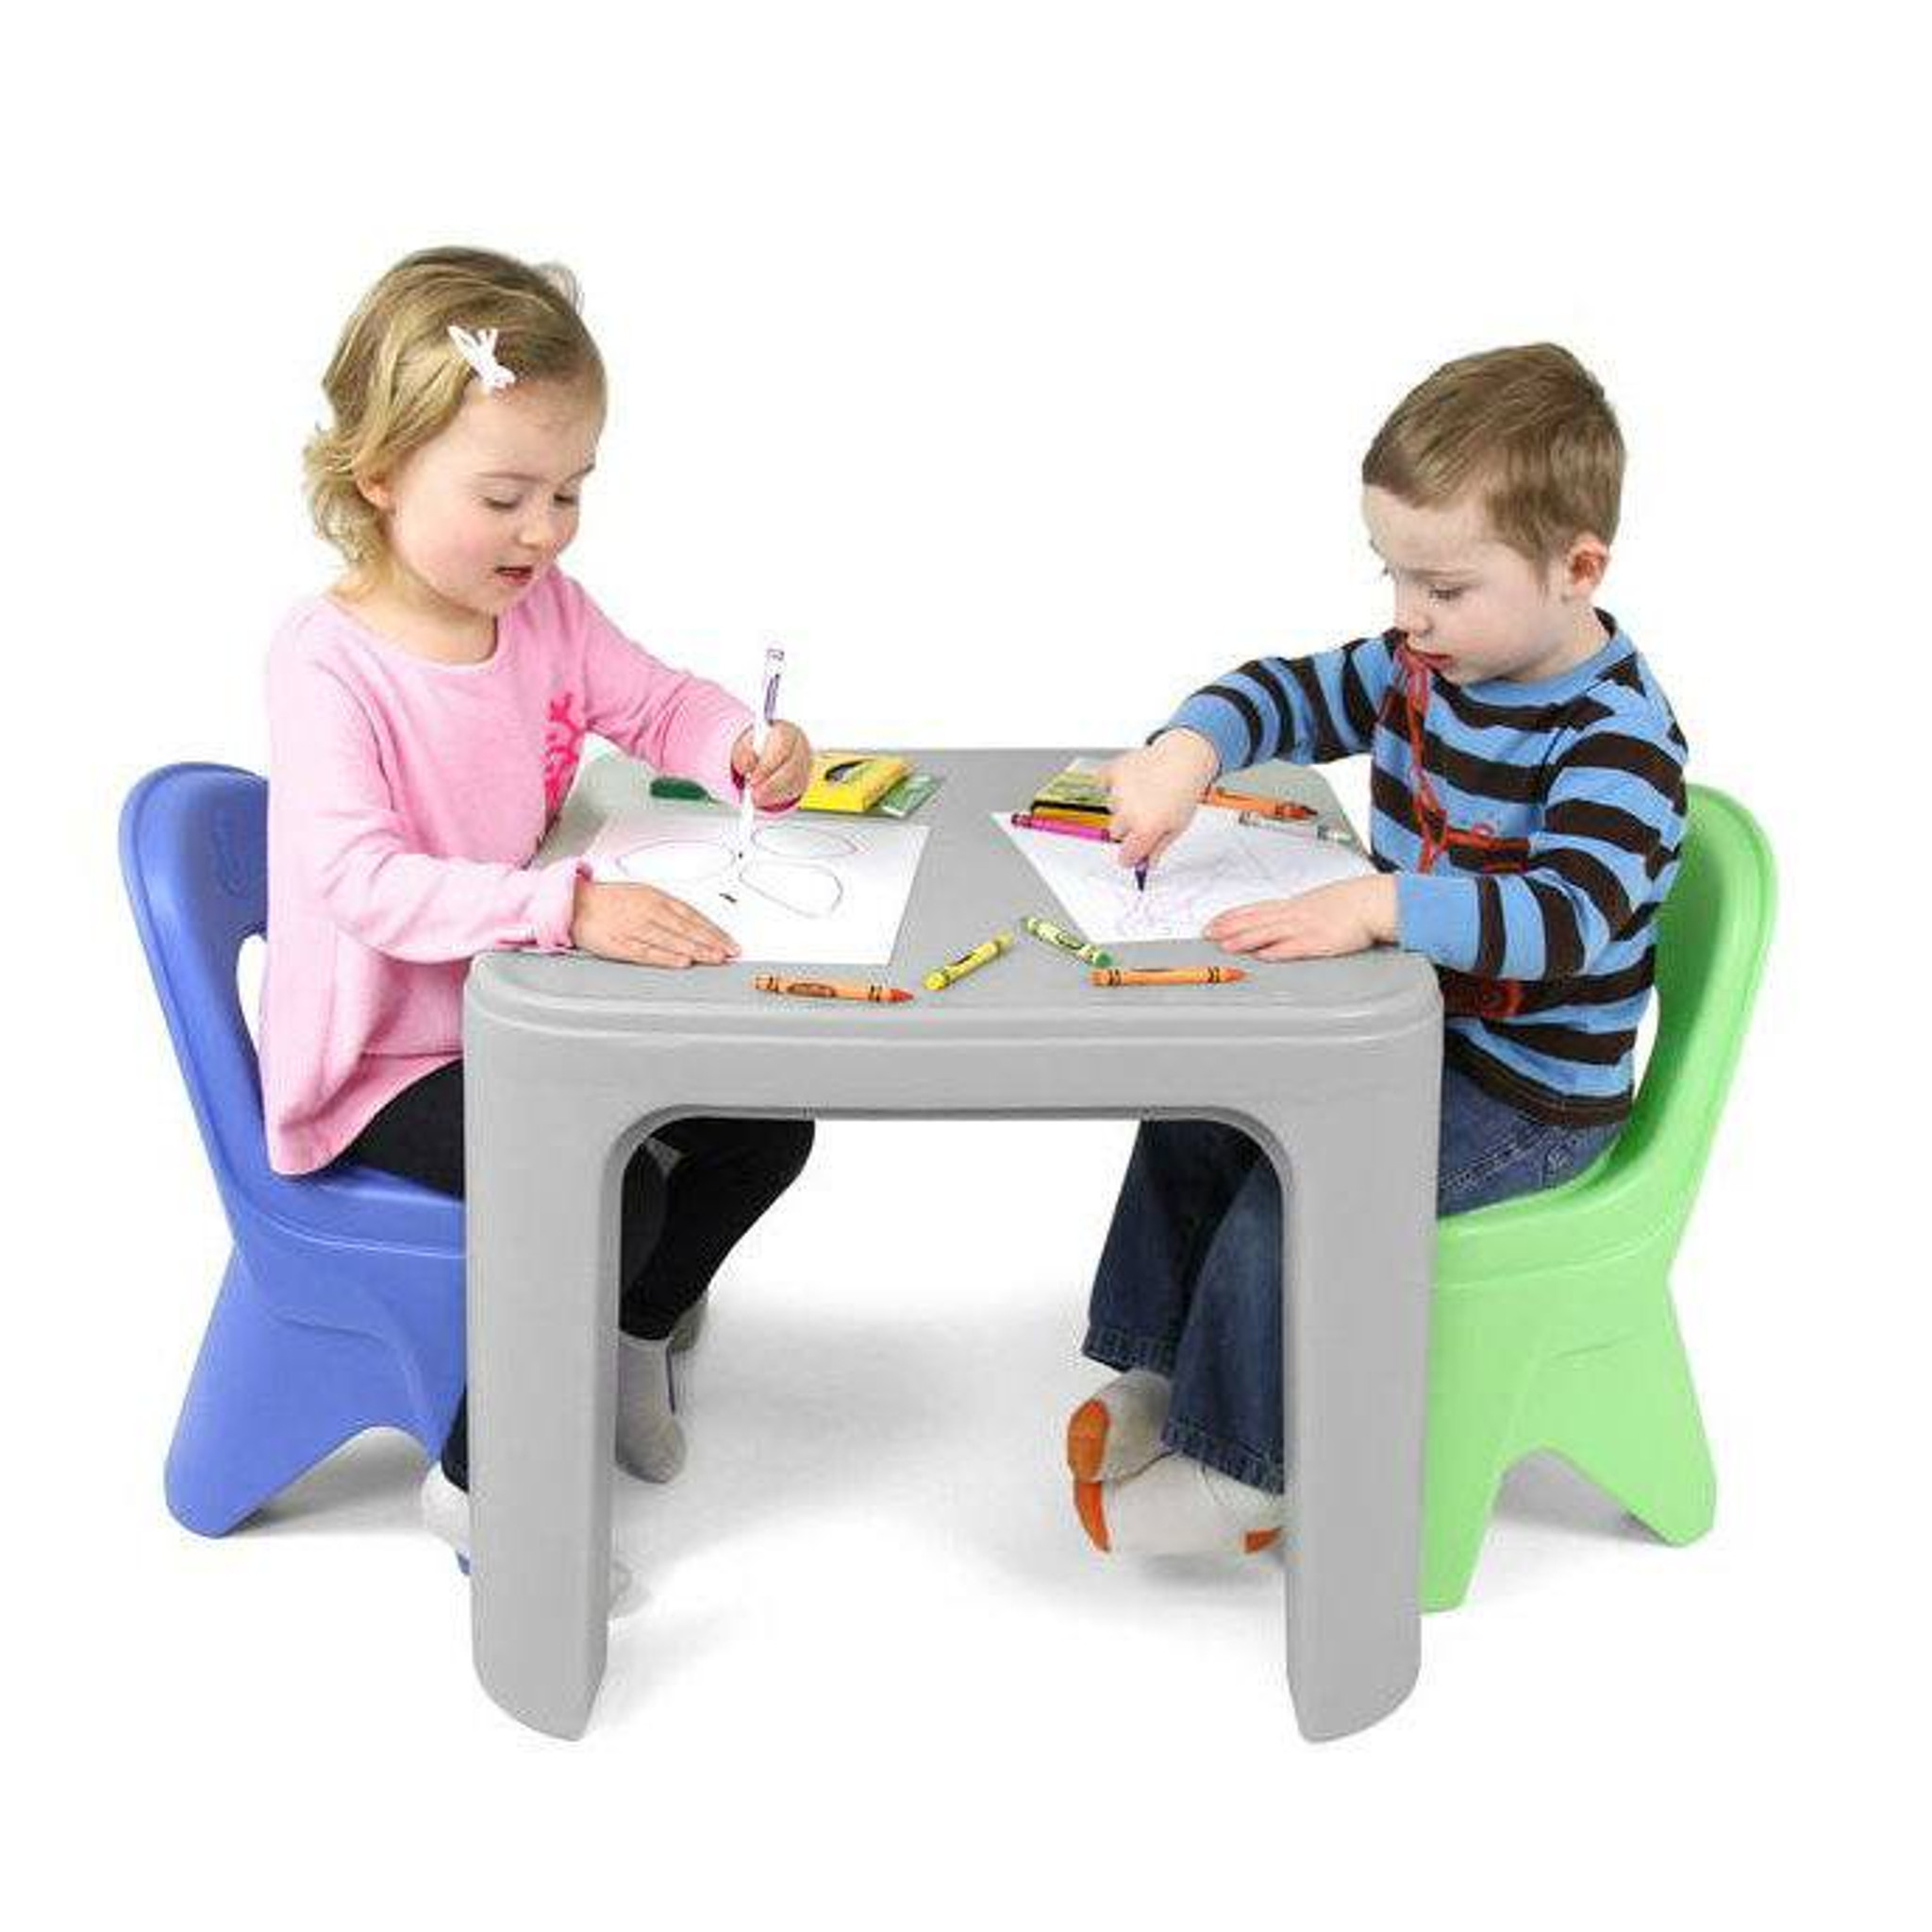 Kids Toddlers Childs Table Chairs Set Large Childrens Plastic School Desk